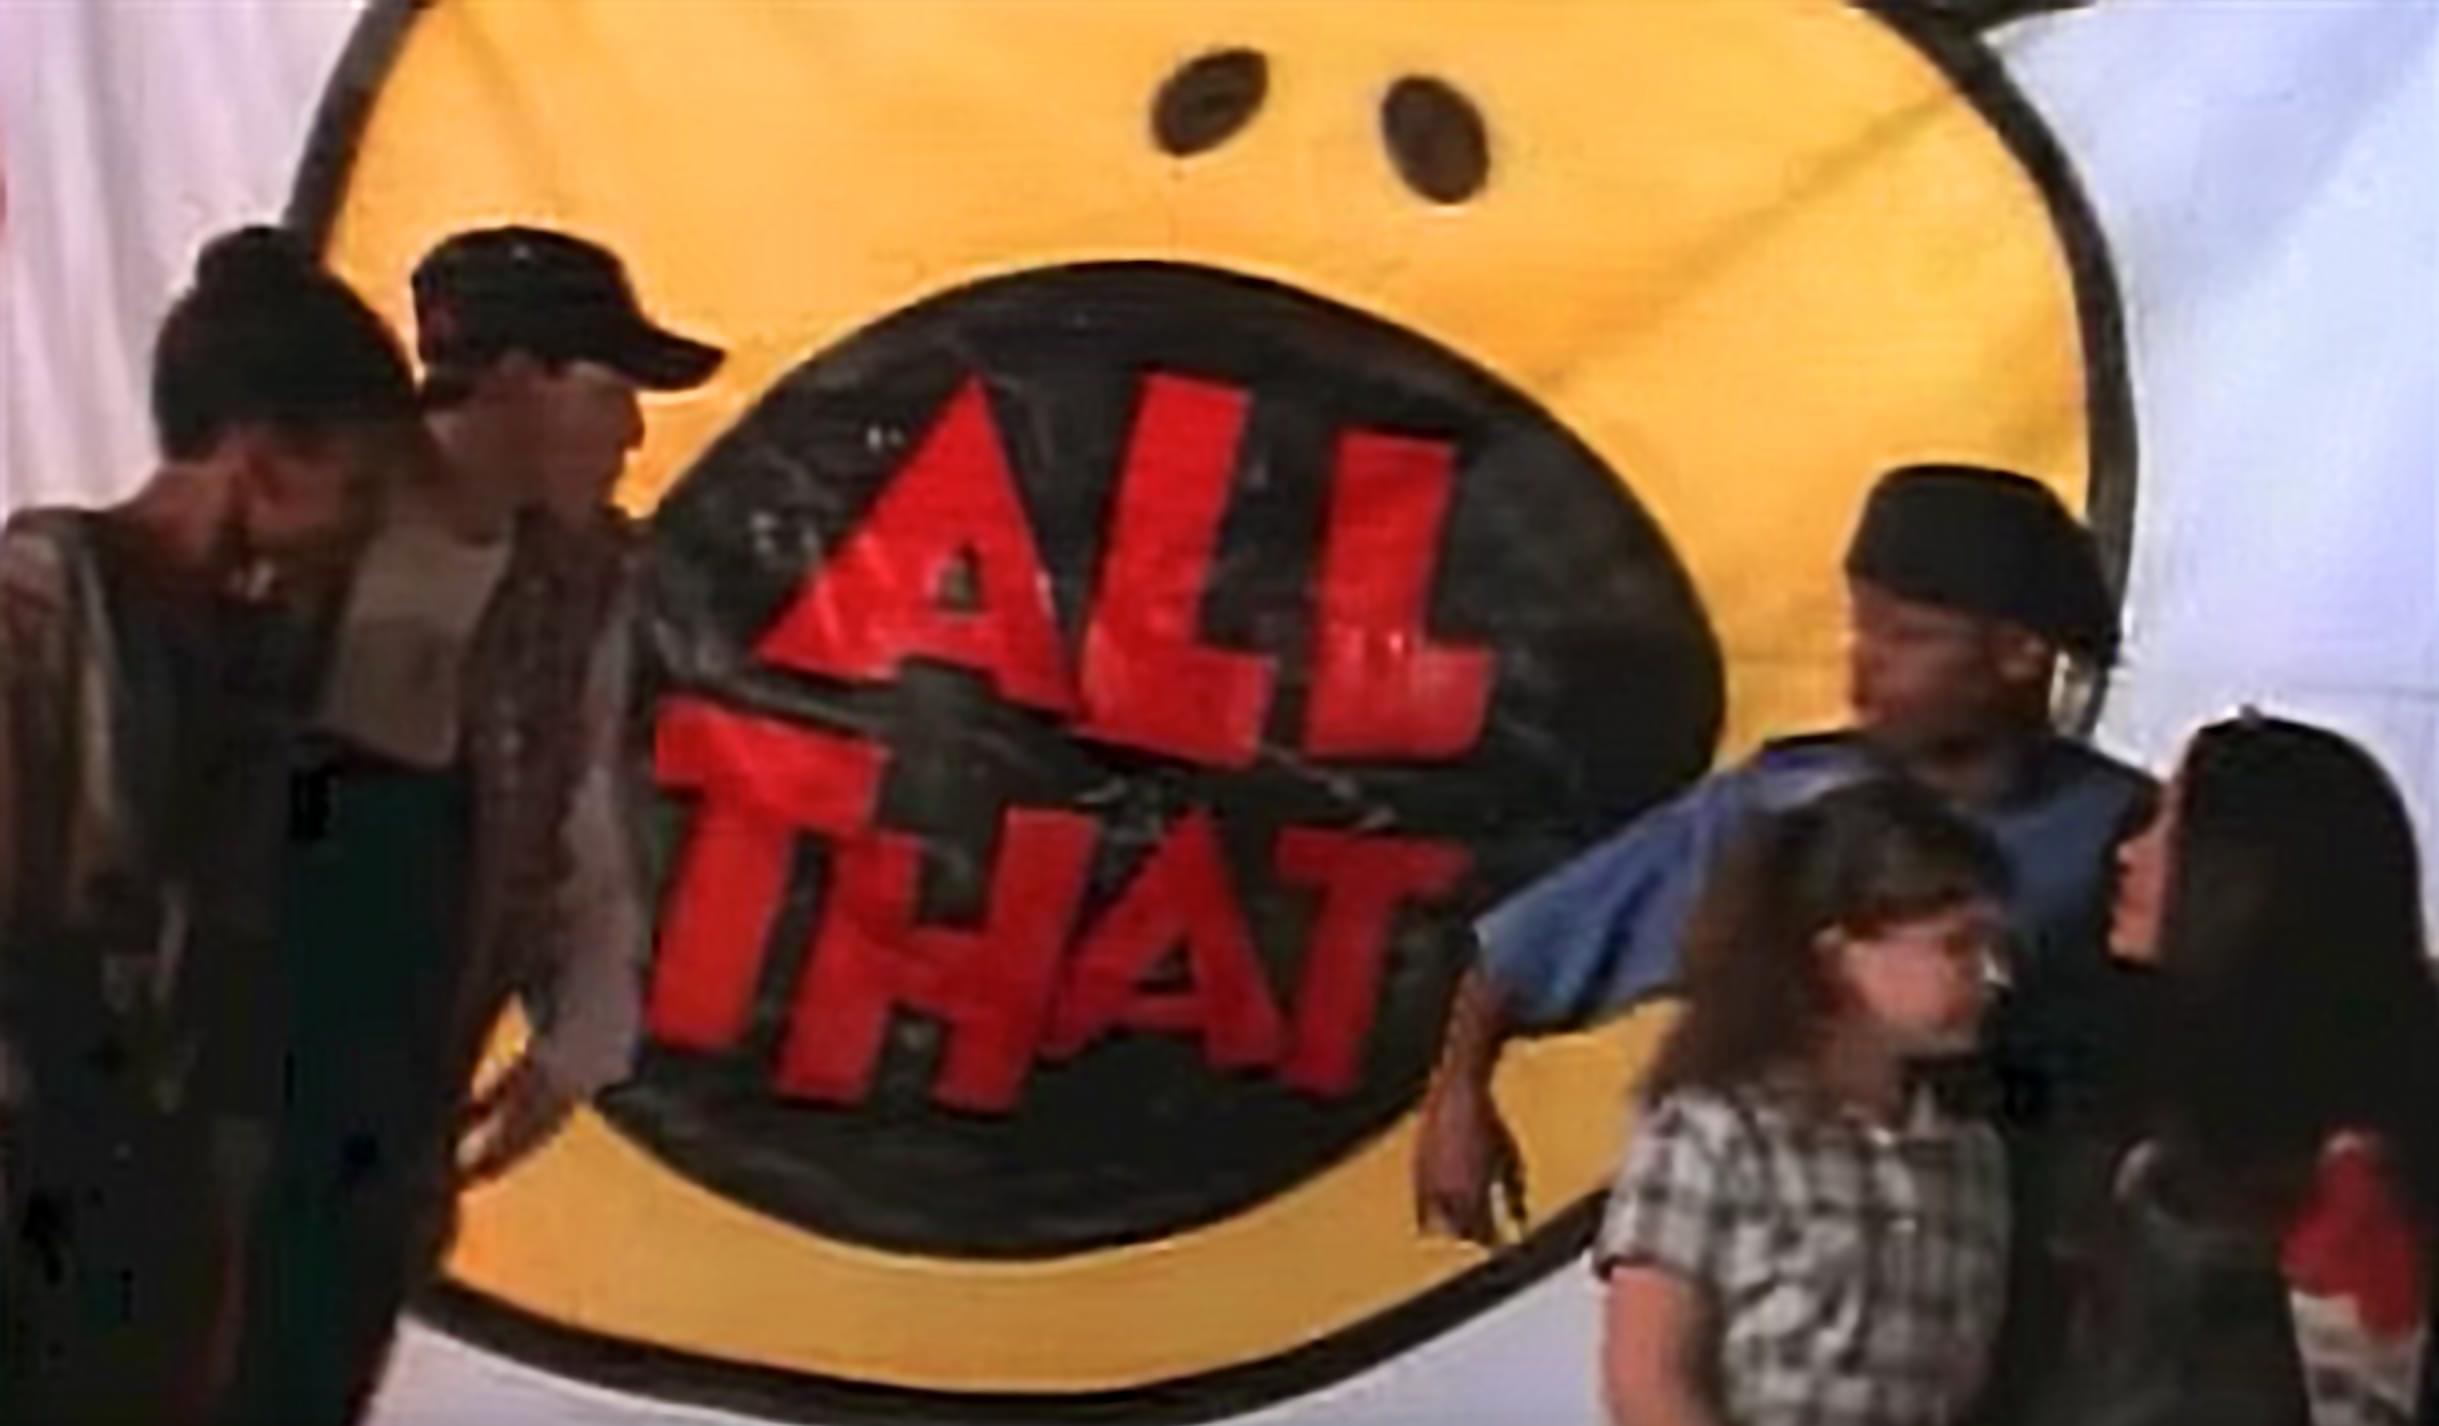 Nickelodeon to revive 1990's show: 'All That'